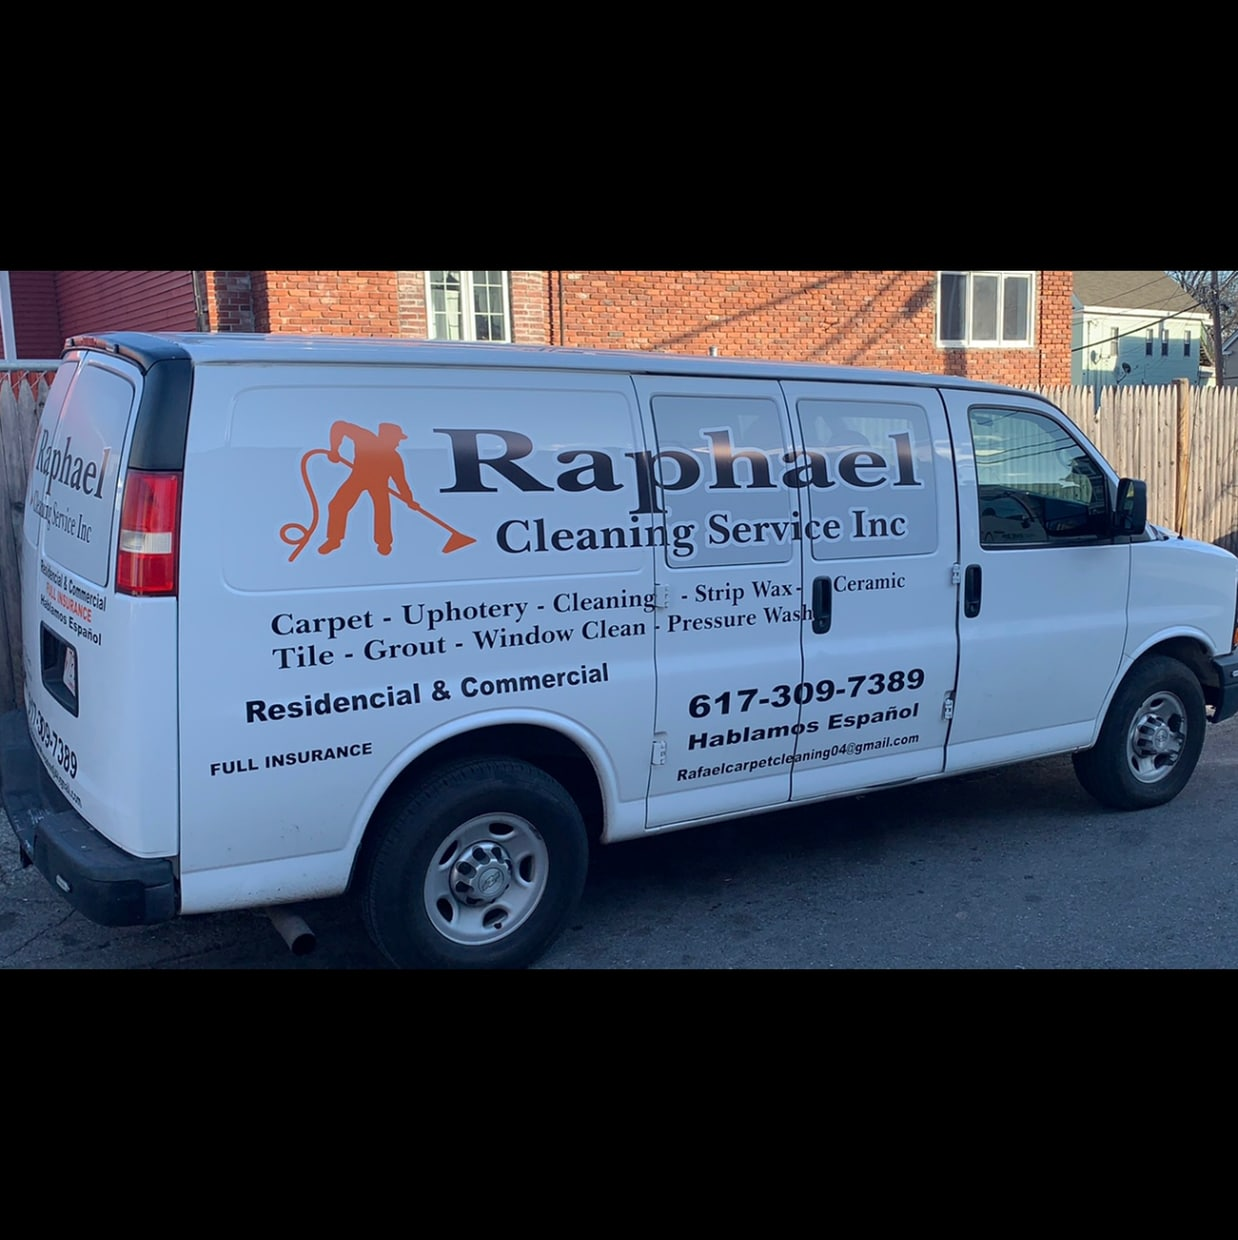 Raphael Cleaning Service Inc.